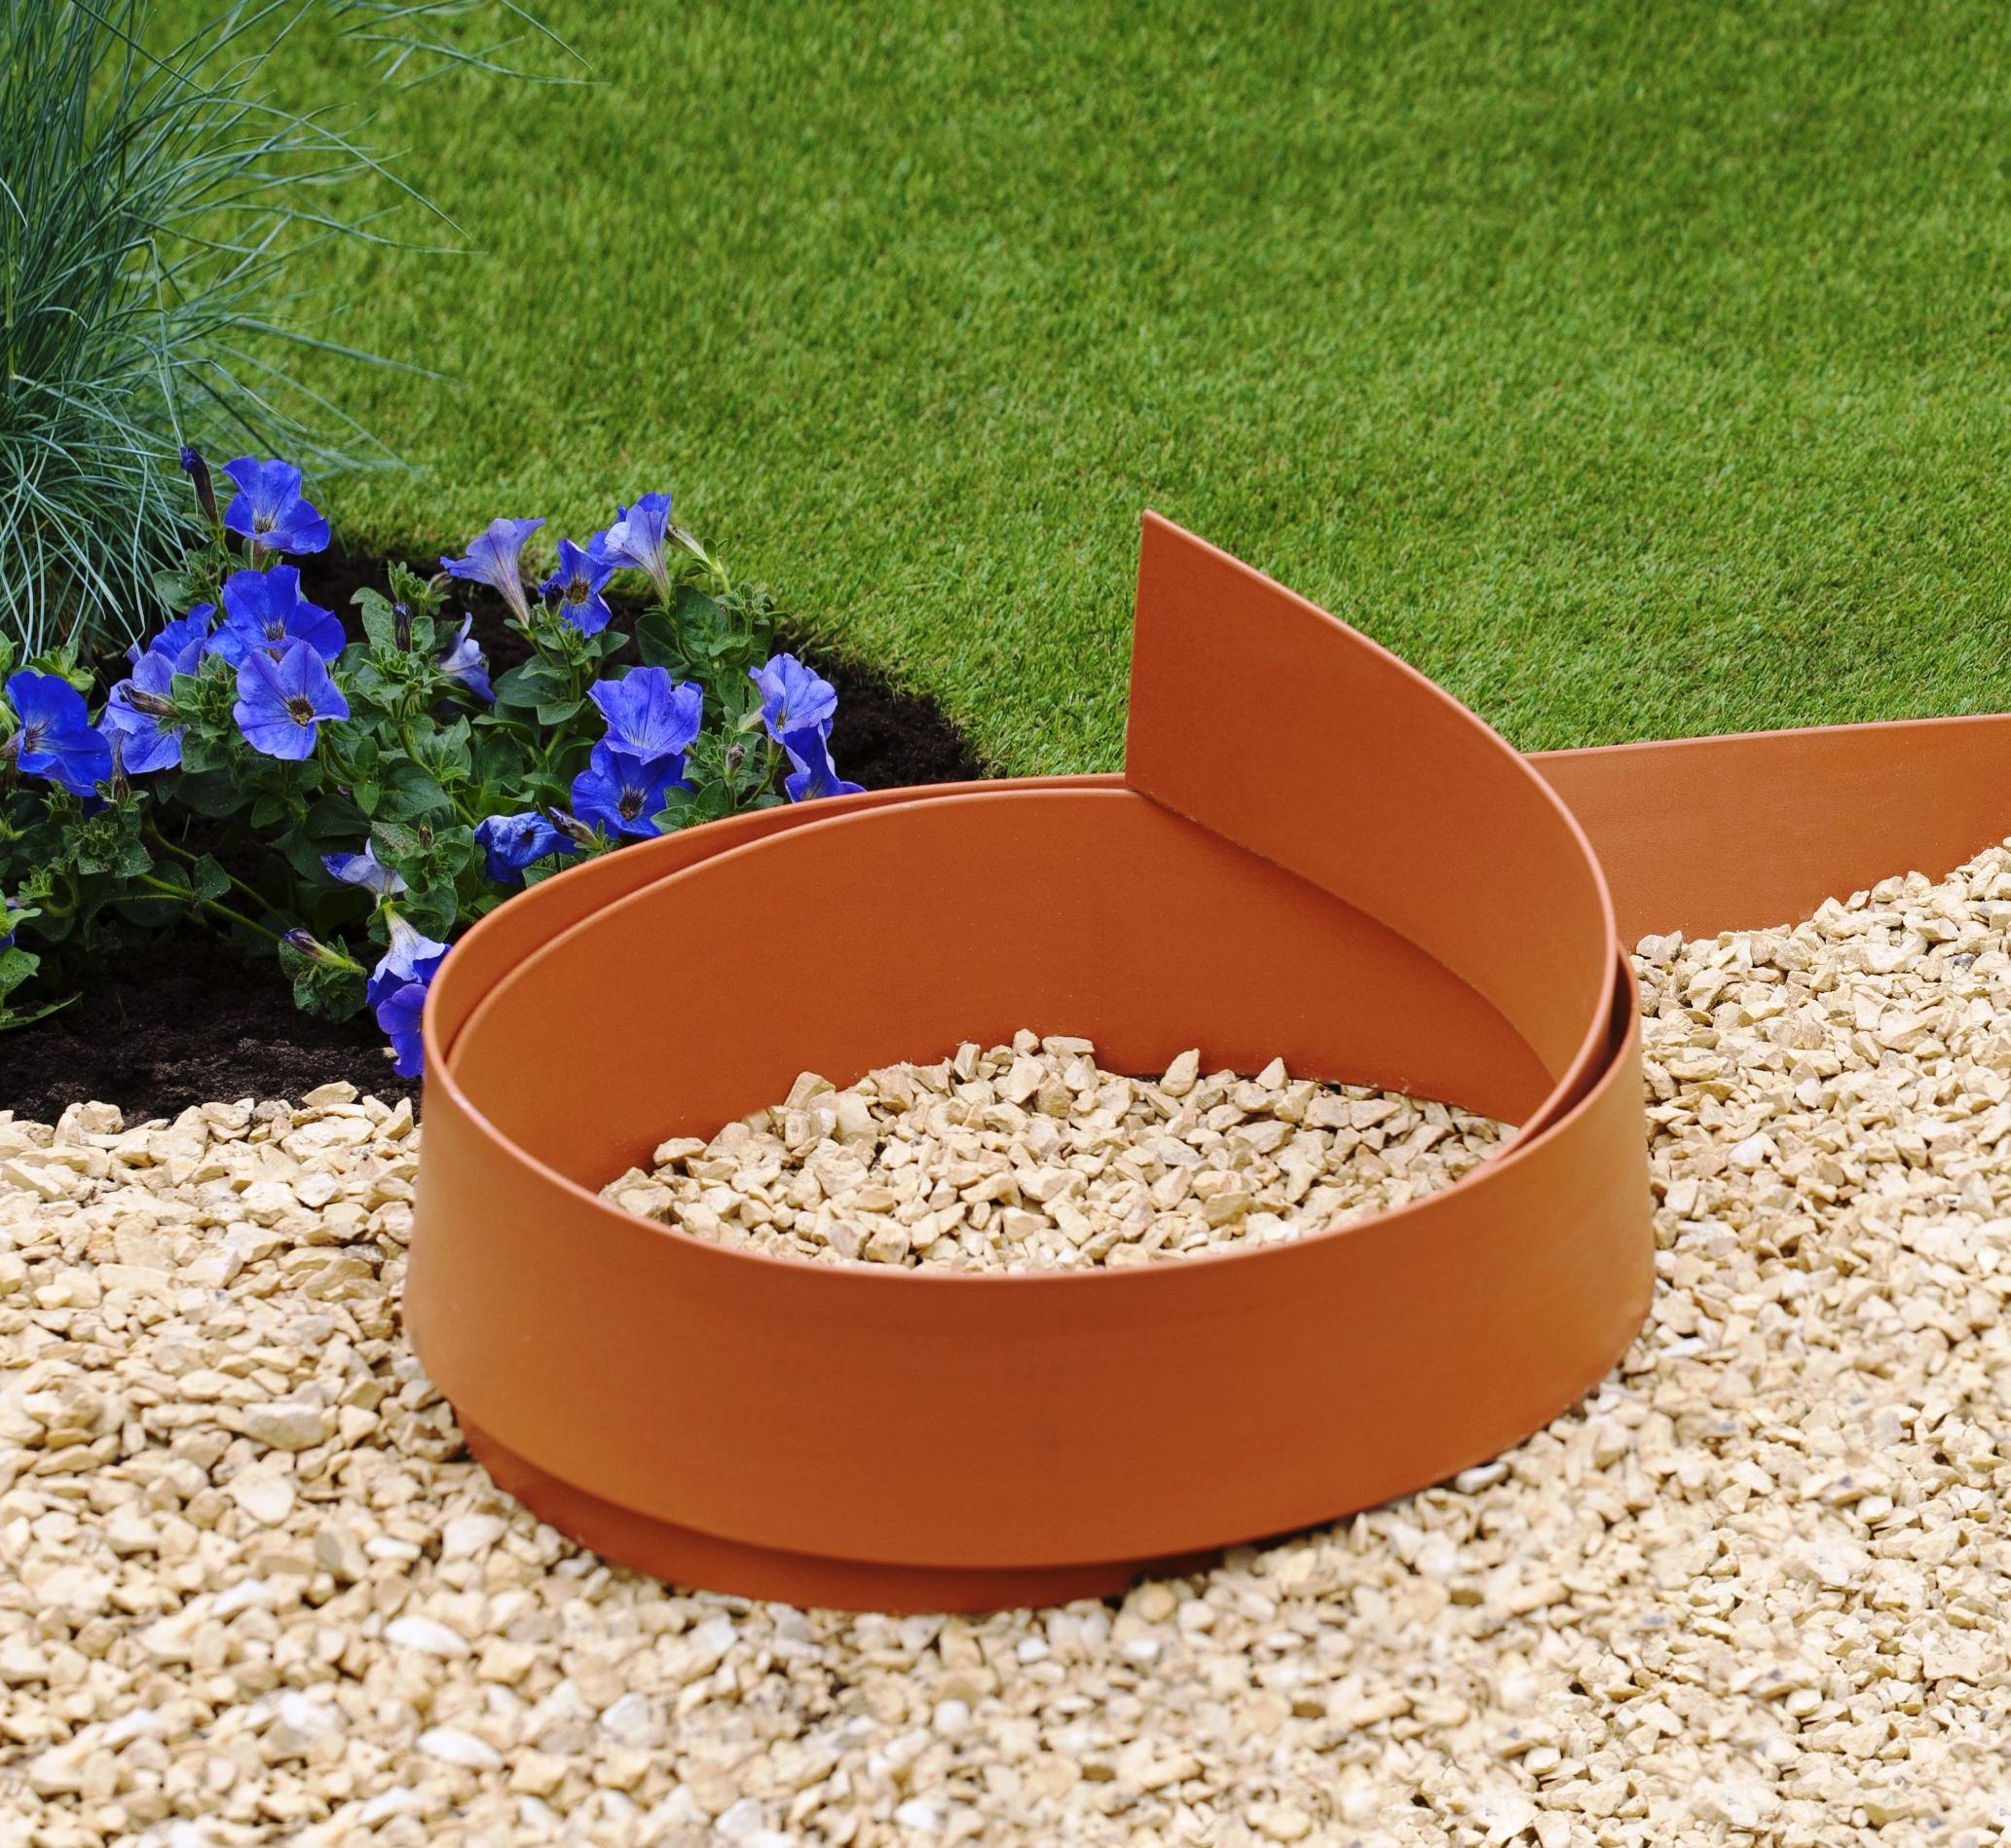 Bordure flexible couleur terracotta jardinet for Bordure de jardin arrondie